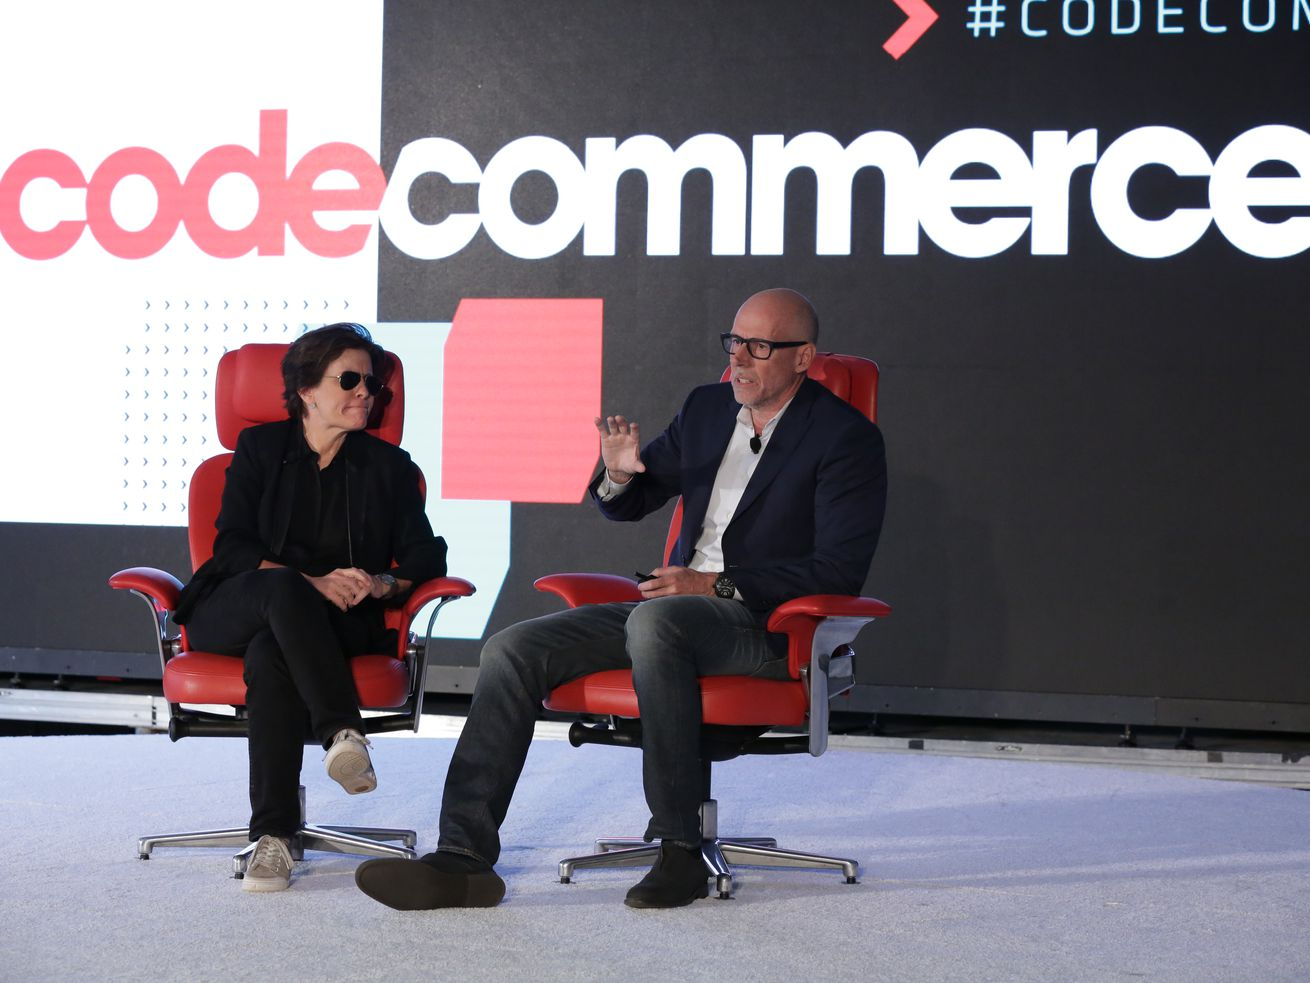 Watch: Scott Galloway's provocative predictions on Amazon, Walmart and the future of retail